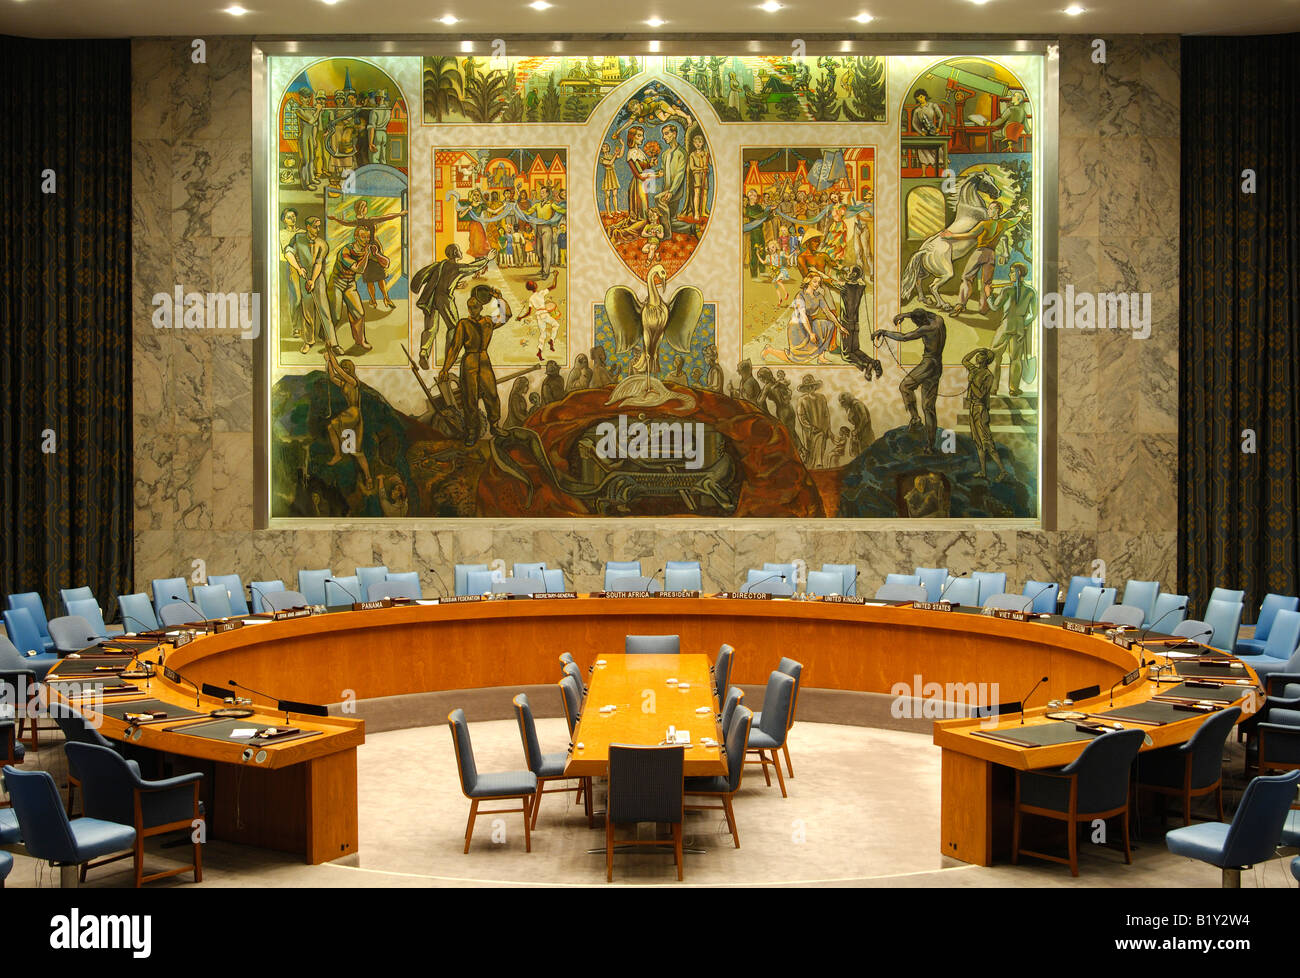 Security Council Chamber, United Nations, New York, USA Stock Photo